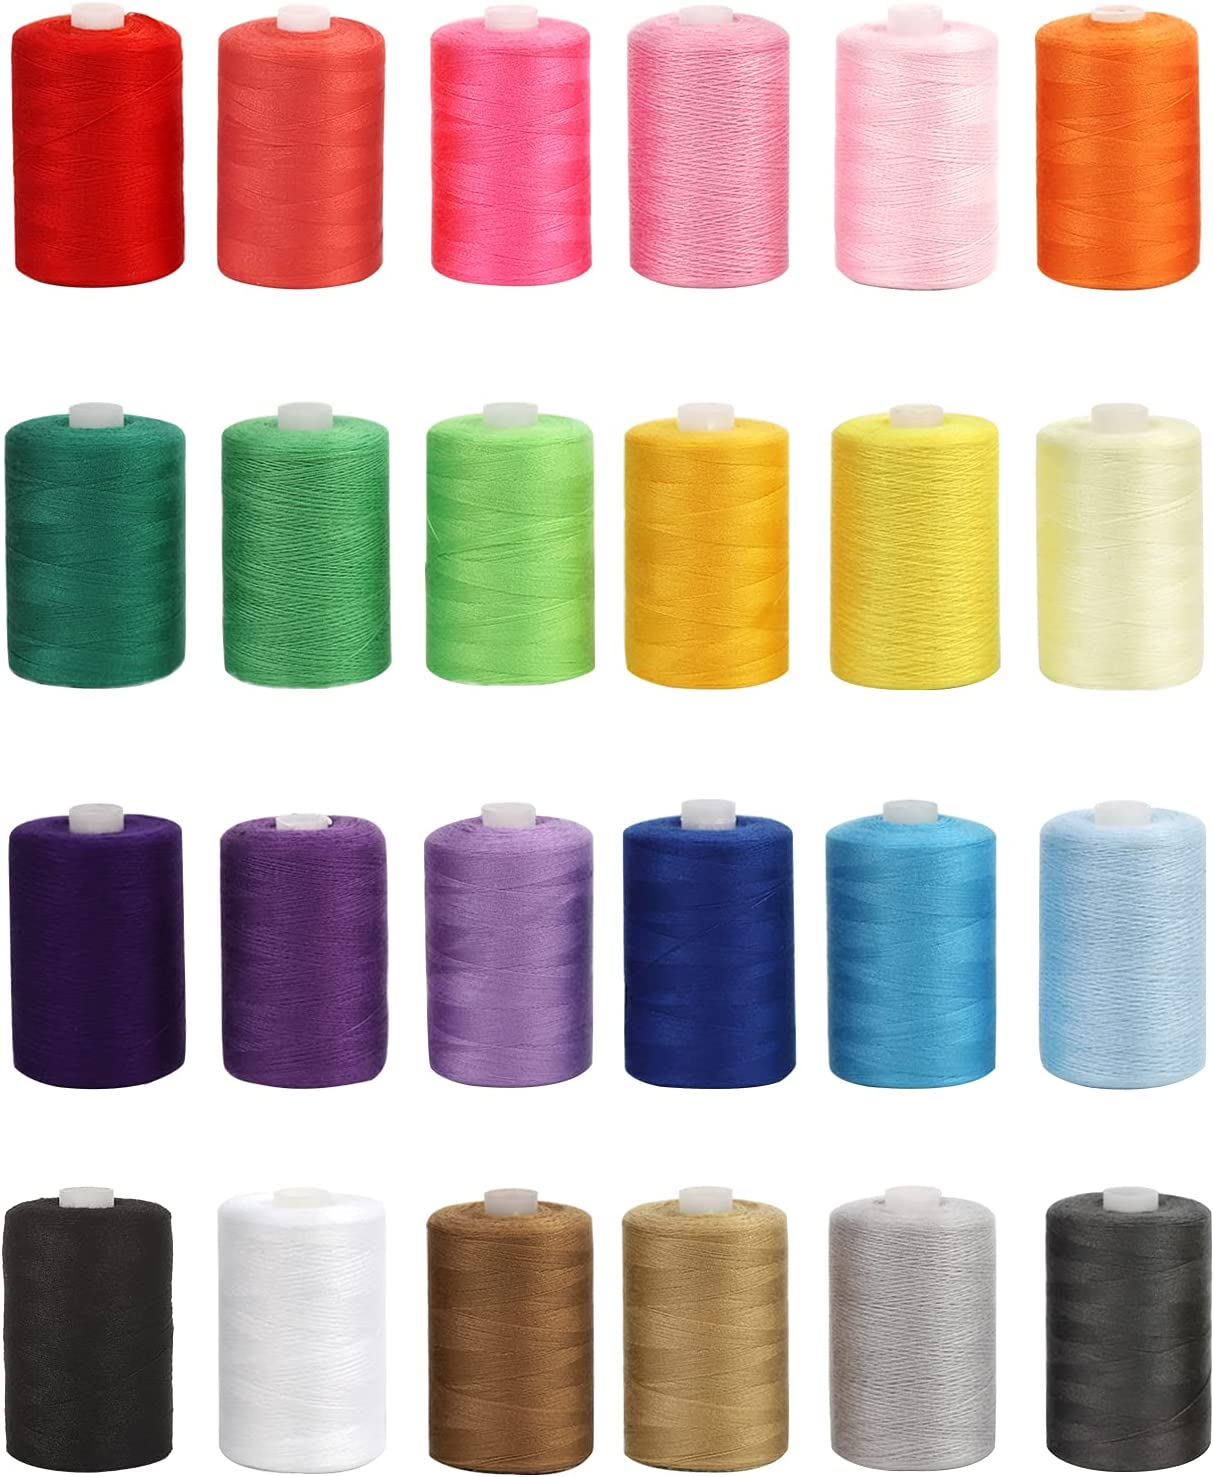 PinPon Sewing Thread, 24 Assorted Colors Total 24,000 Yards Serger Thread for Hand & Machine Sewing, Quilting Threads for Travel Home Use DIY